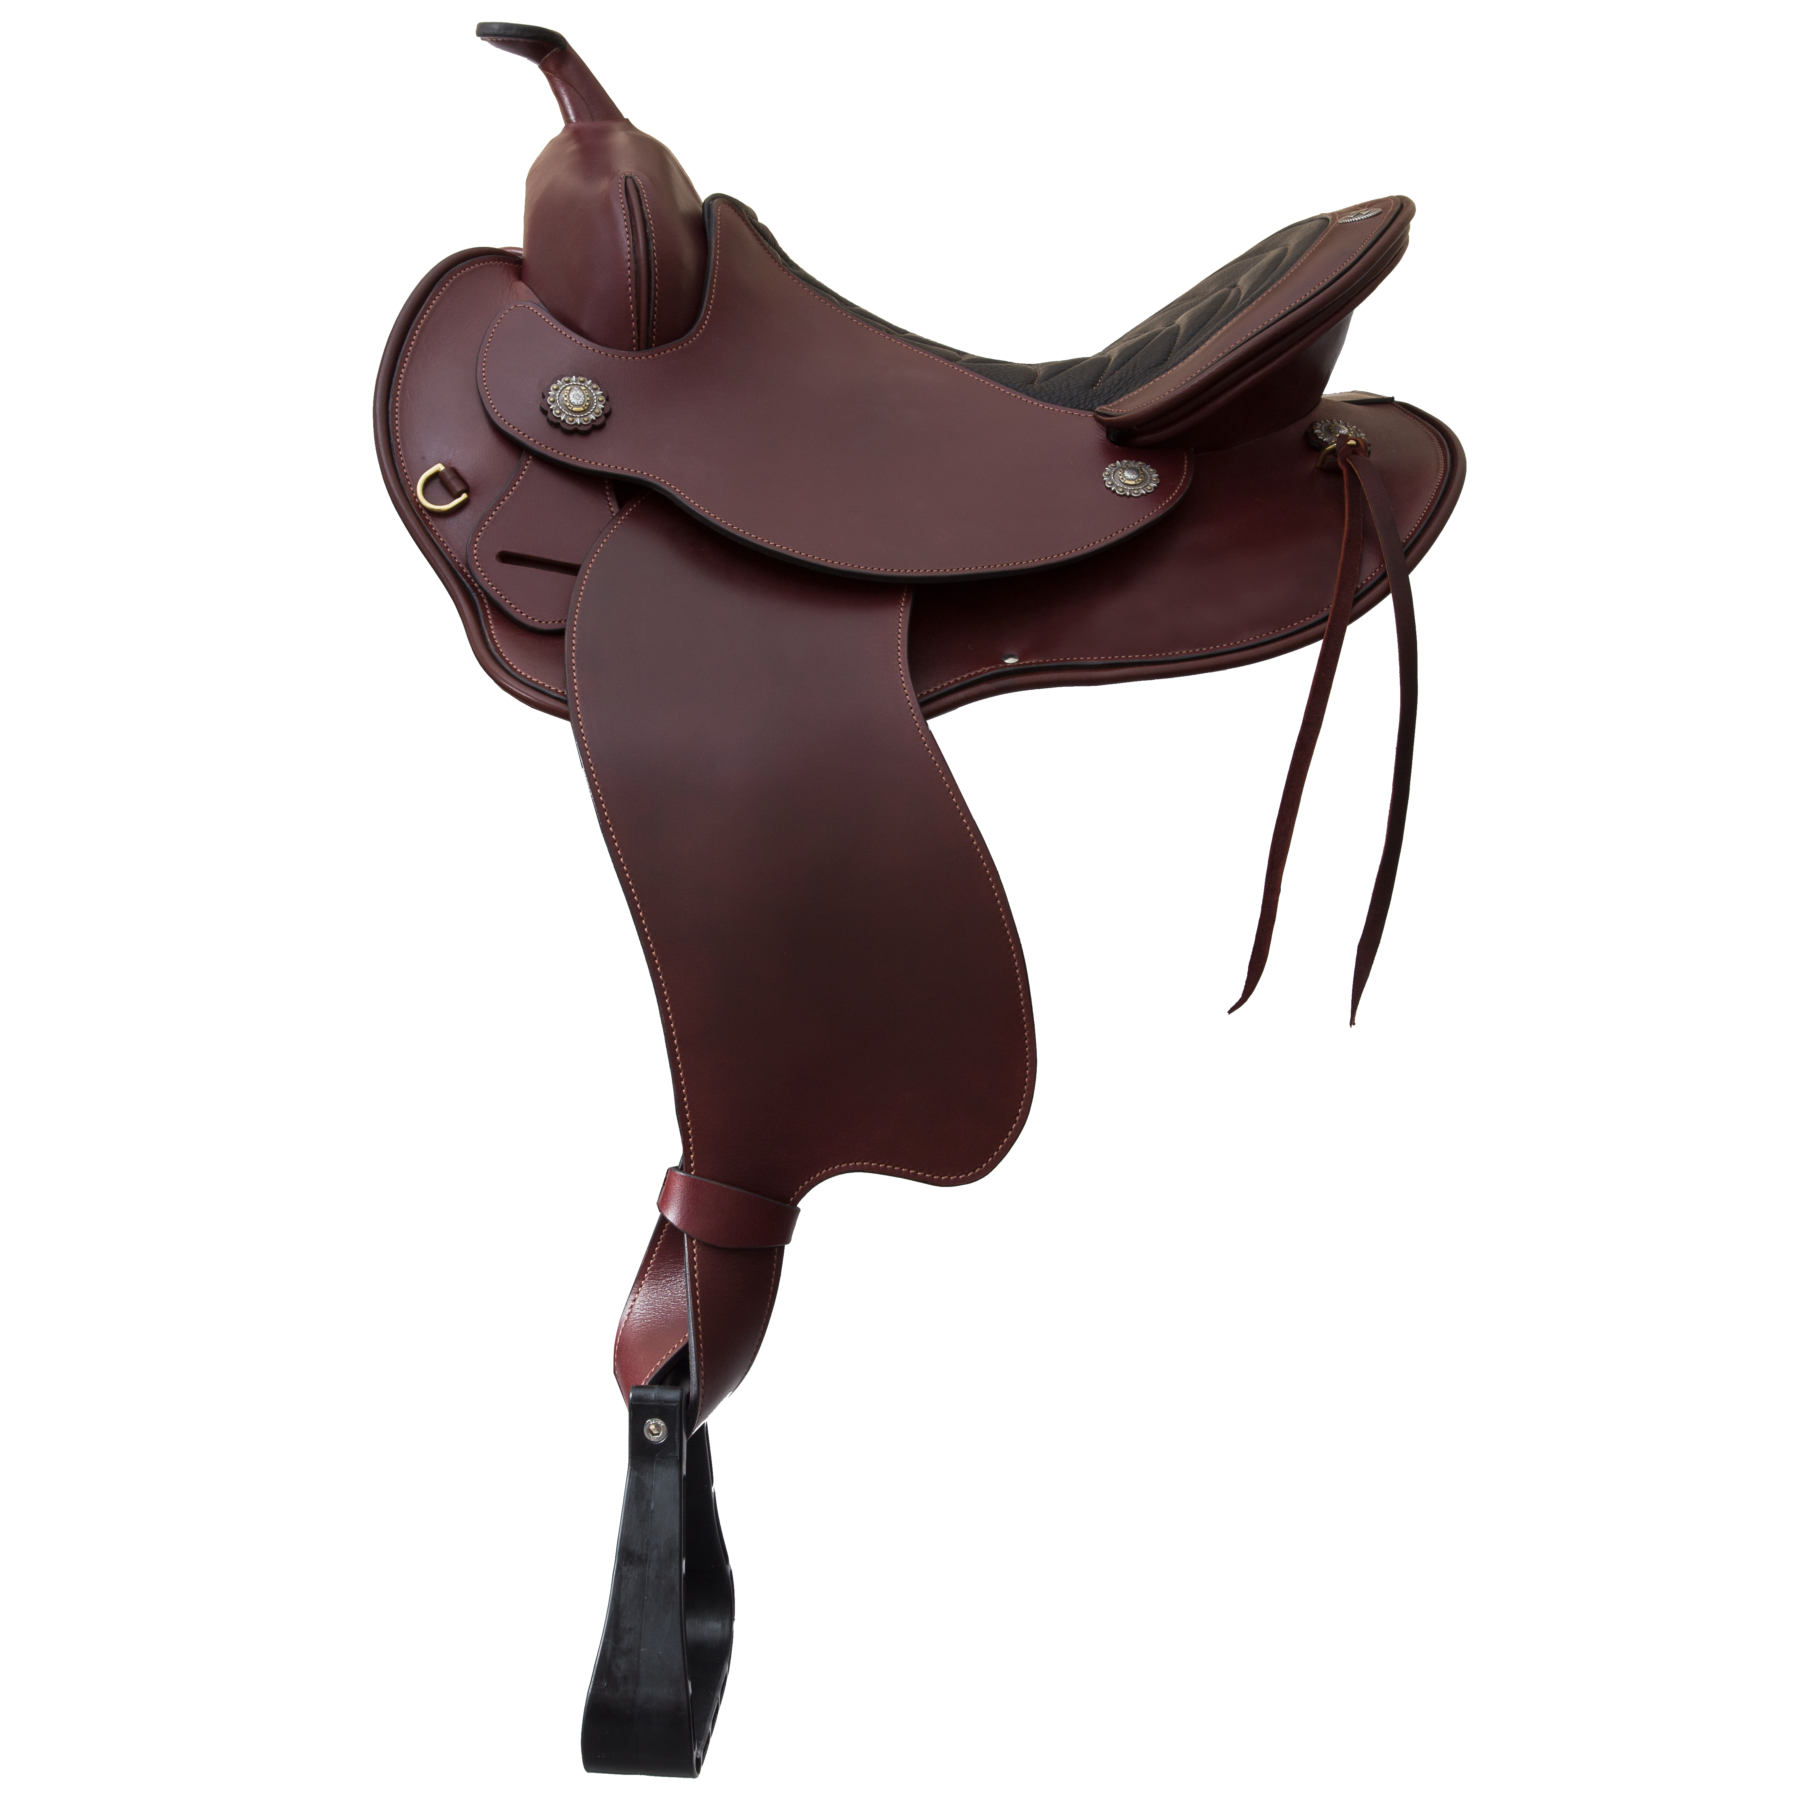 Horse saddle png. Devin western trail schleese